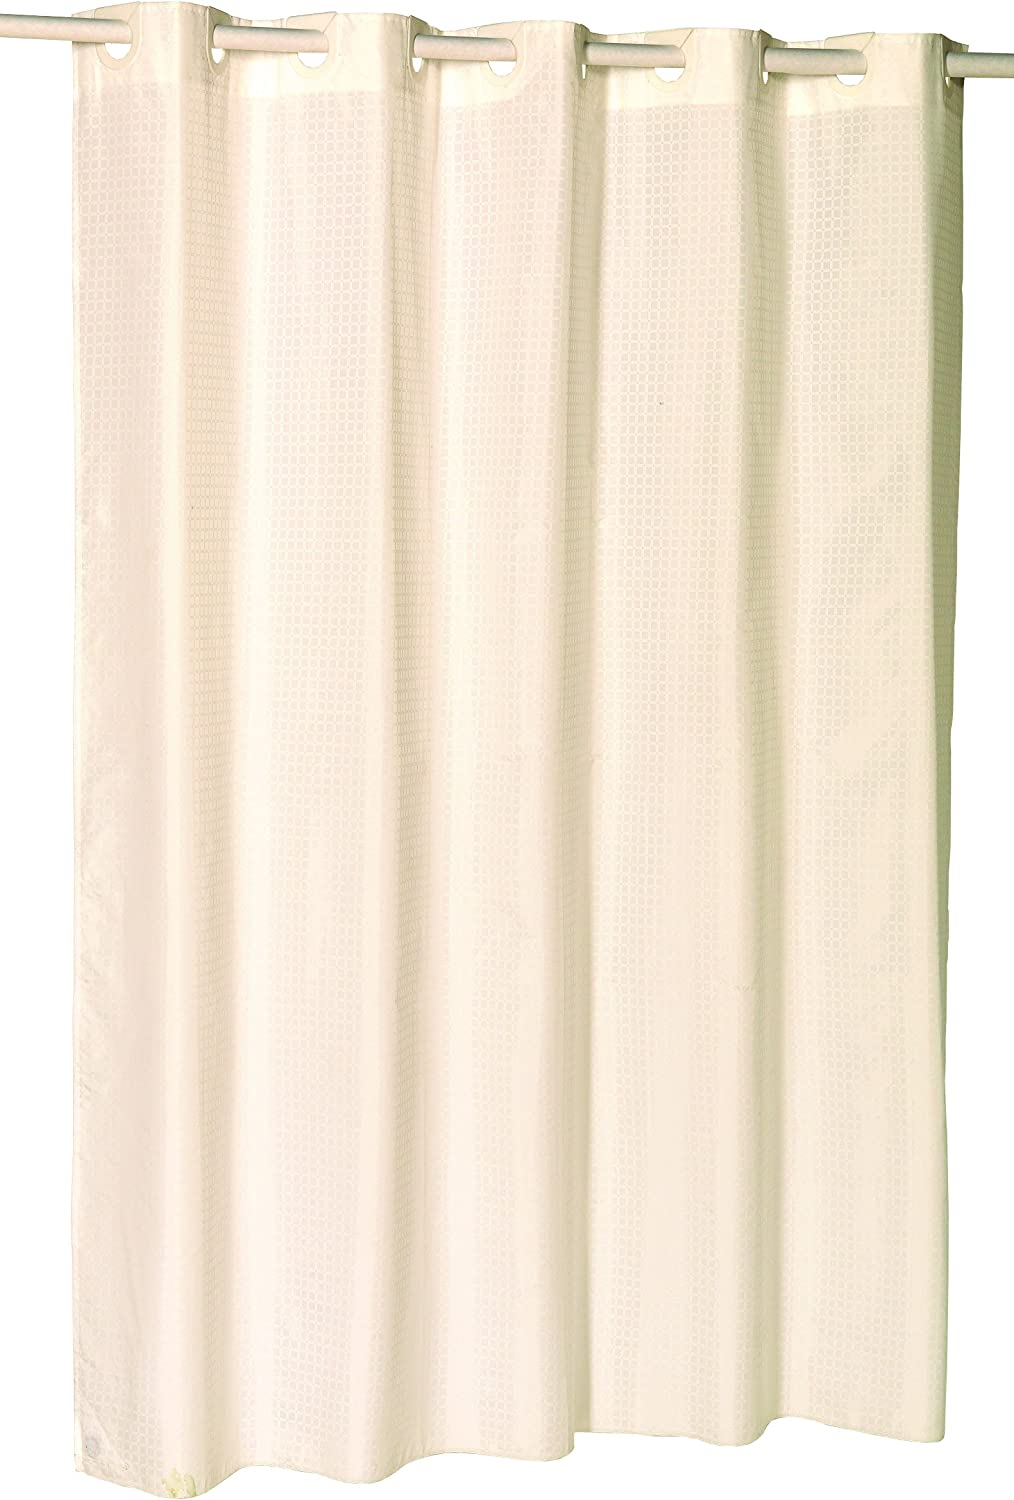 Carnation Home Fashions EZ On Fabric Ivory Curtain Check sale Shower Max 54% OFF